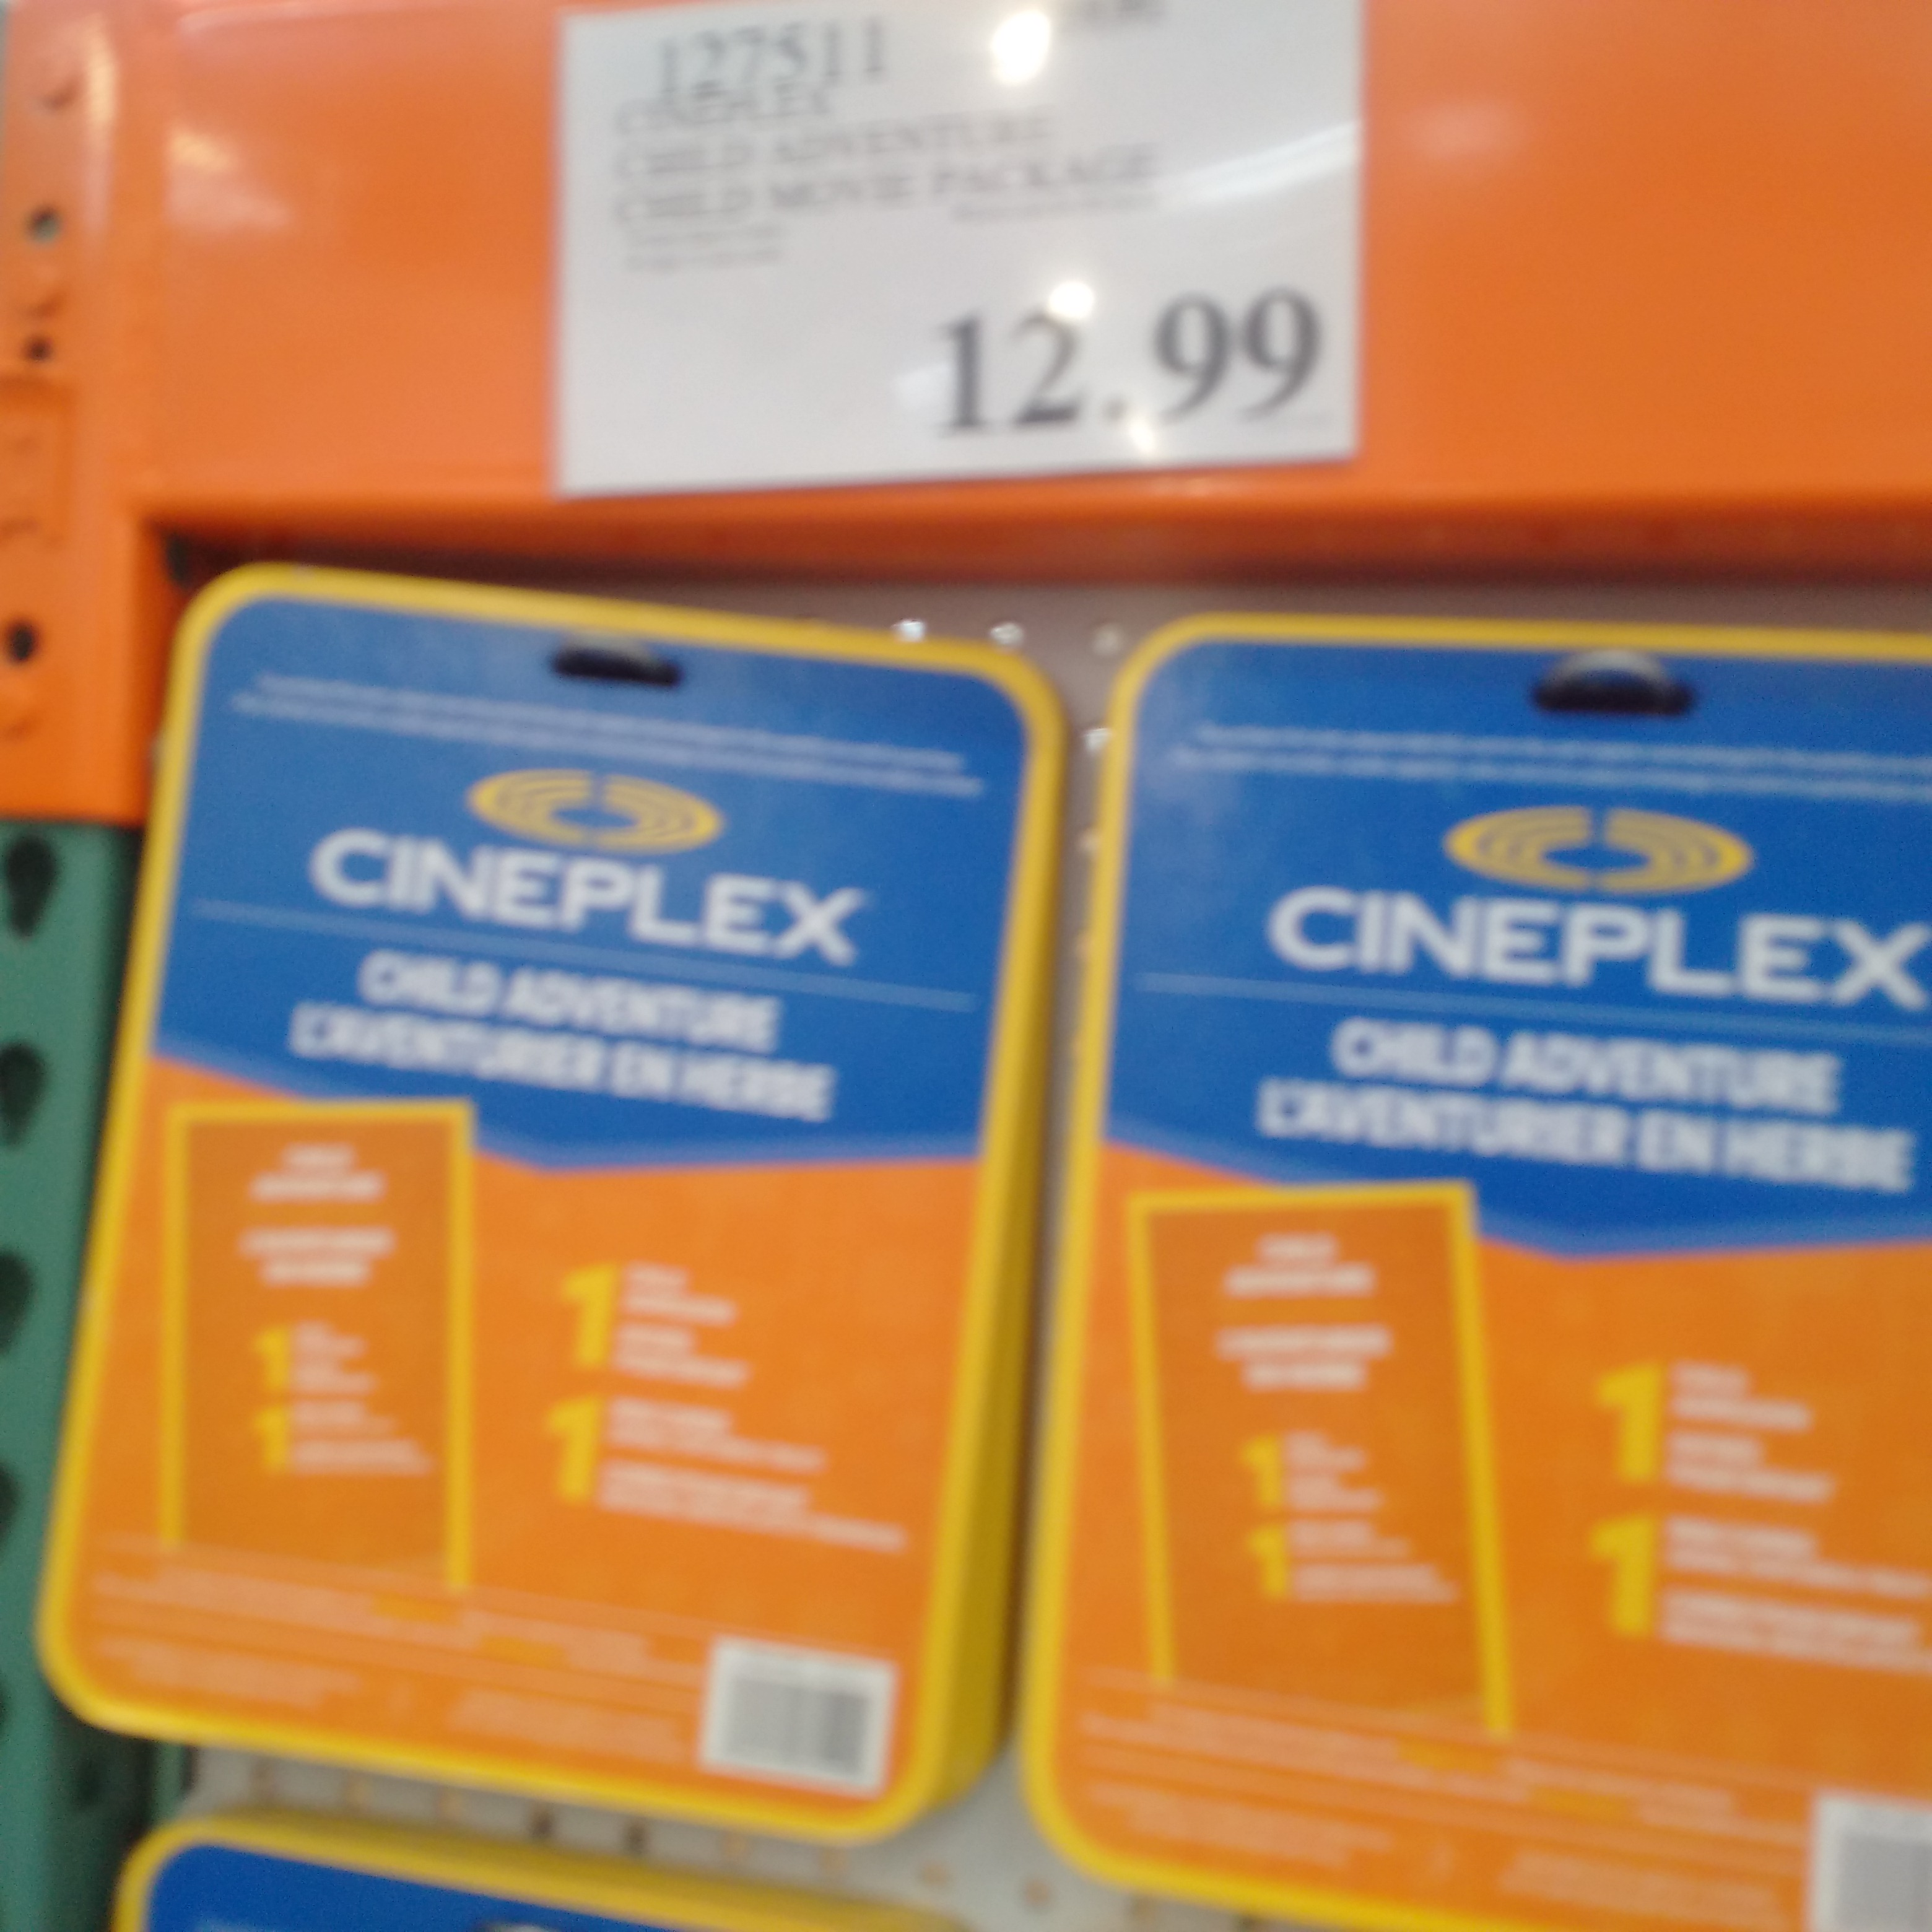 Discounted Gift Cards And Movie Passes At Costco!